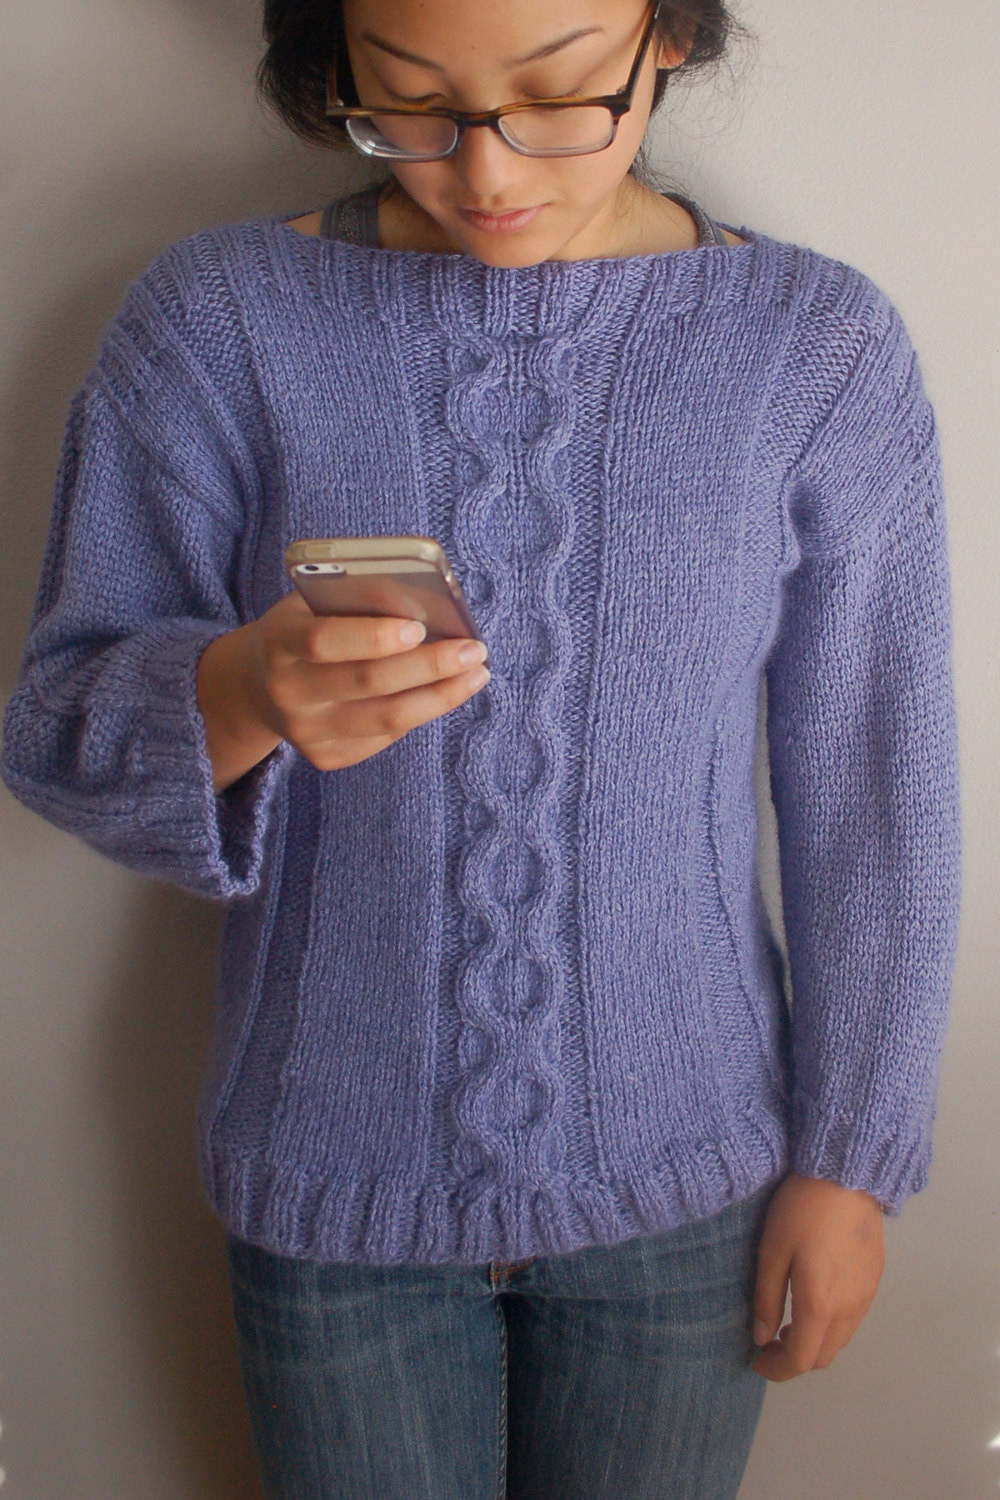 Unique Cable Sweater Knitting Pattern Easy to Knit Pullover Cable Knit Sweater Pattern Of Lovely 42 Images Cable Knit Sweater Pattern